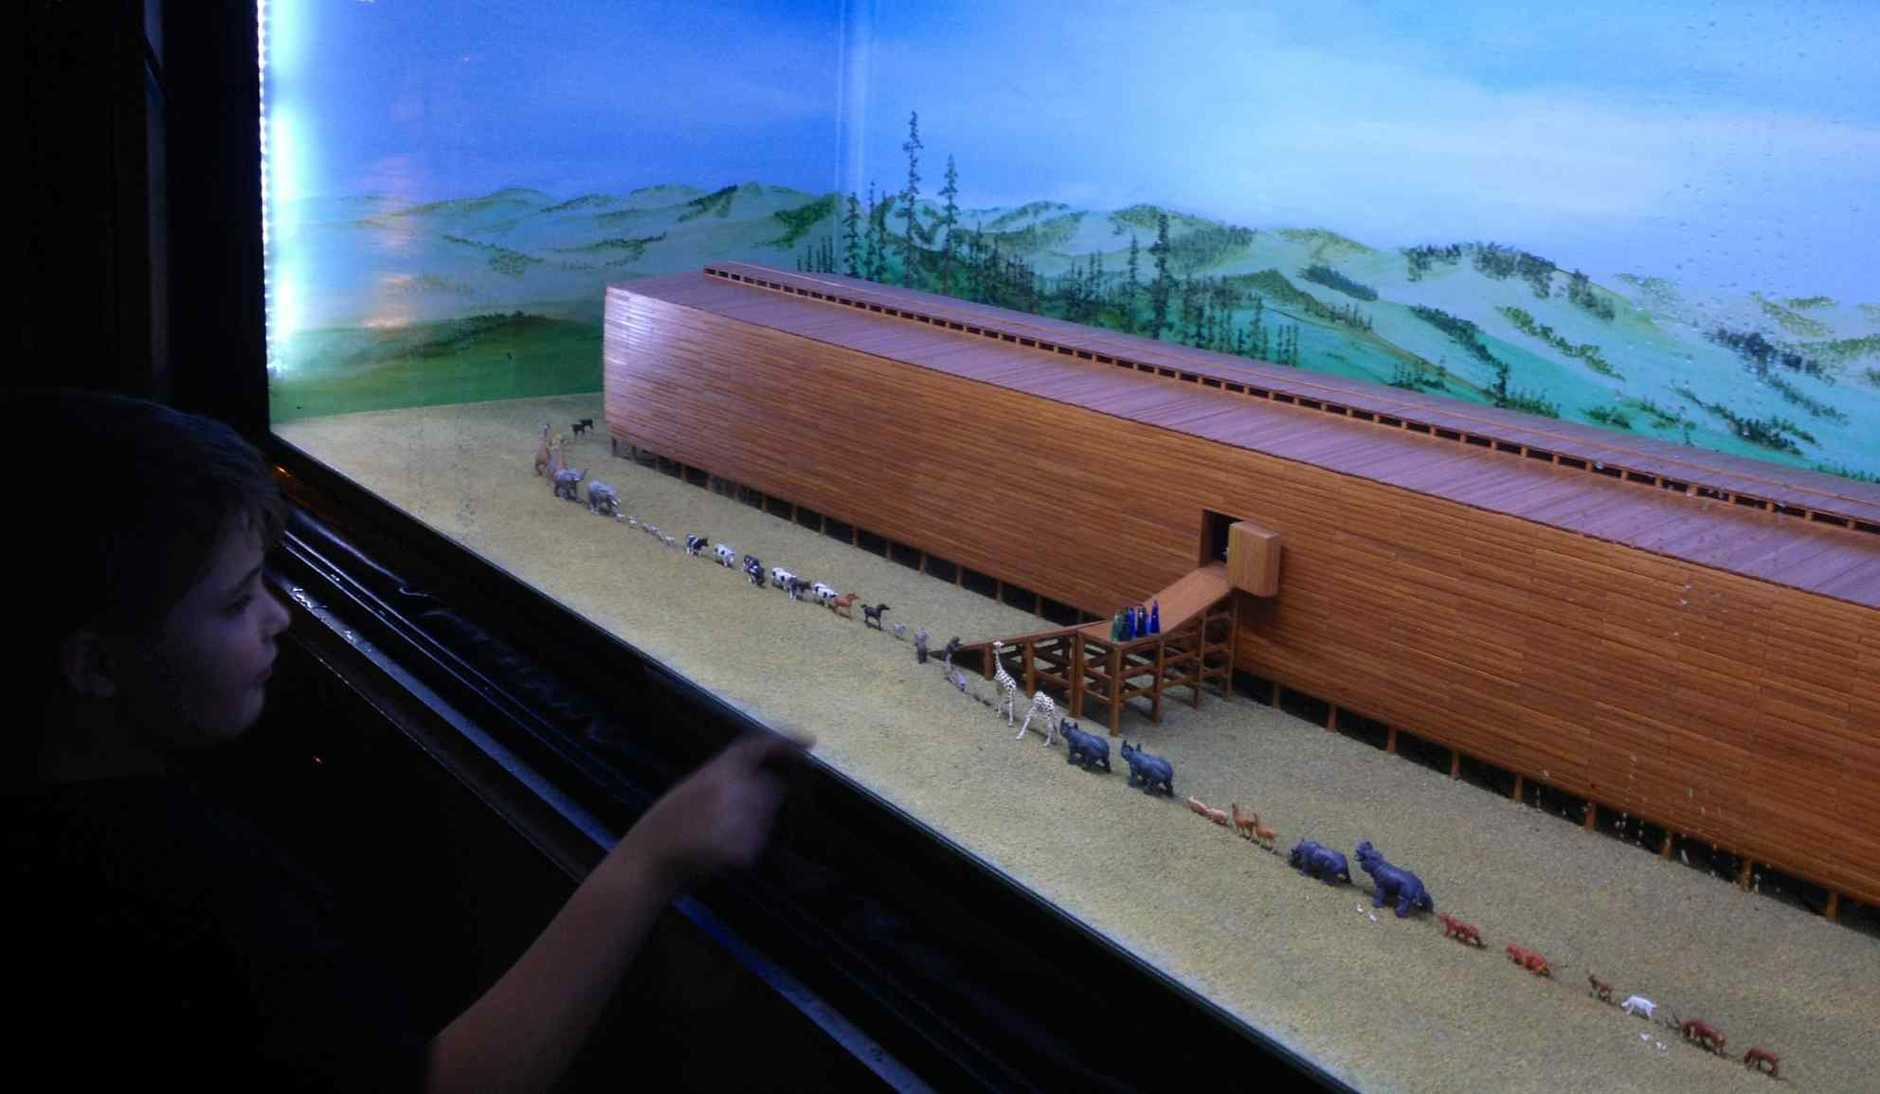 Children have been fascinated by the replica of Noah's Ark.